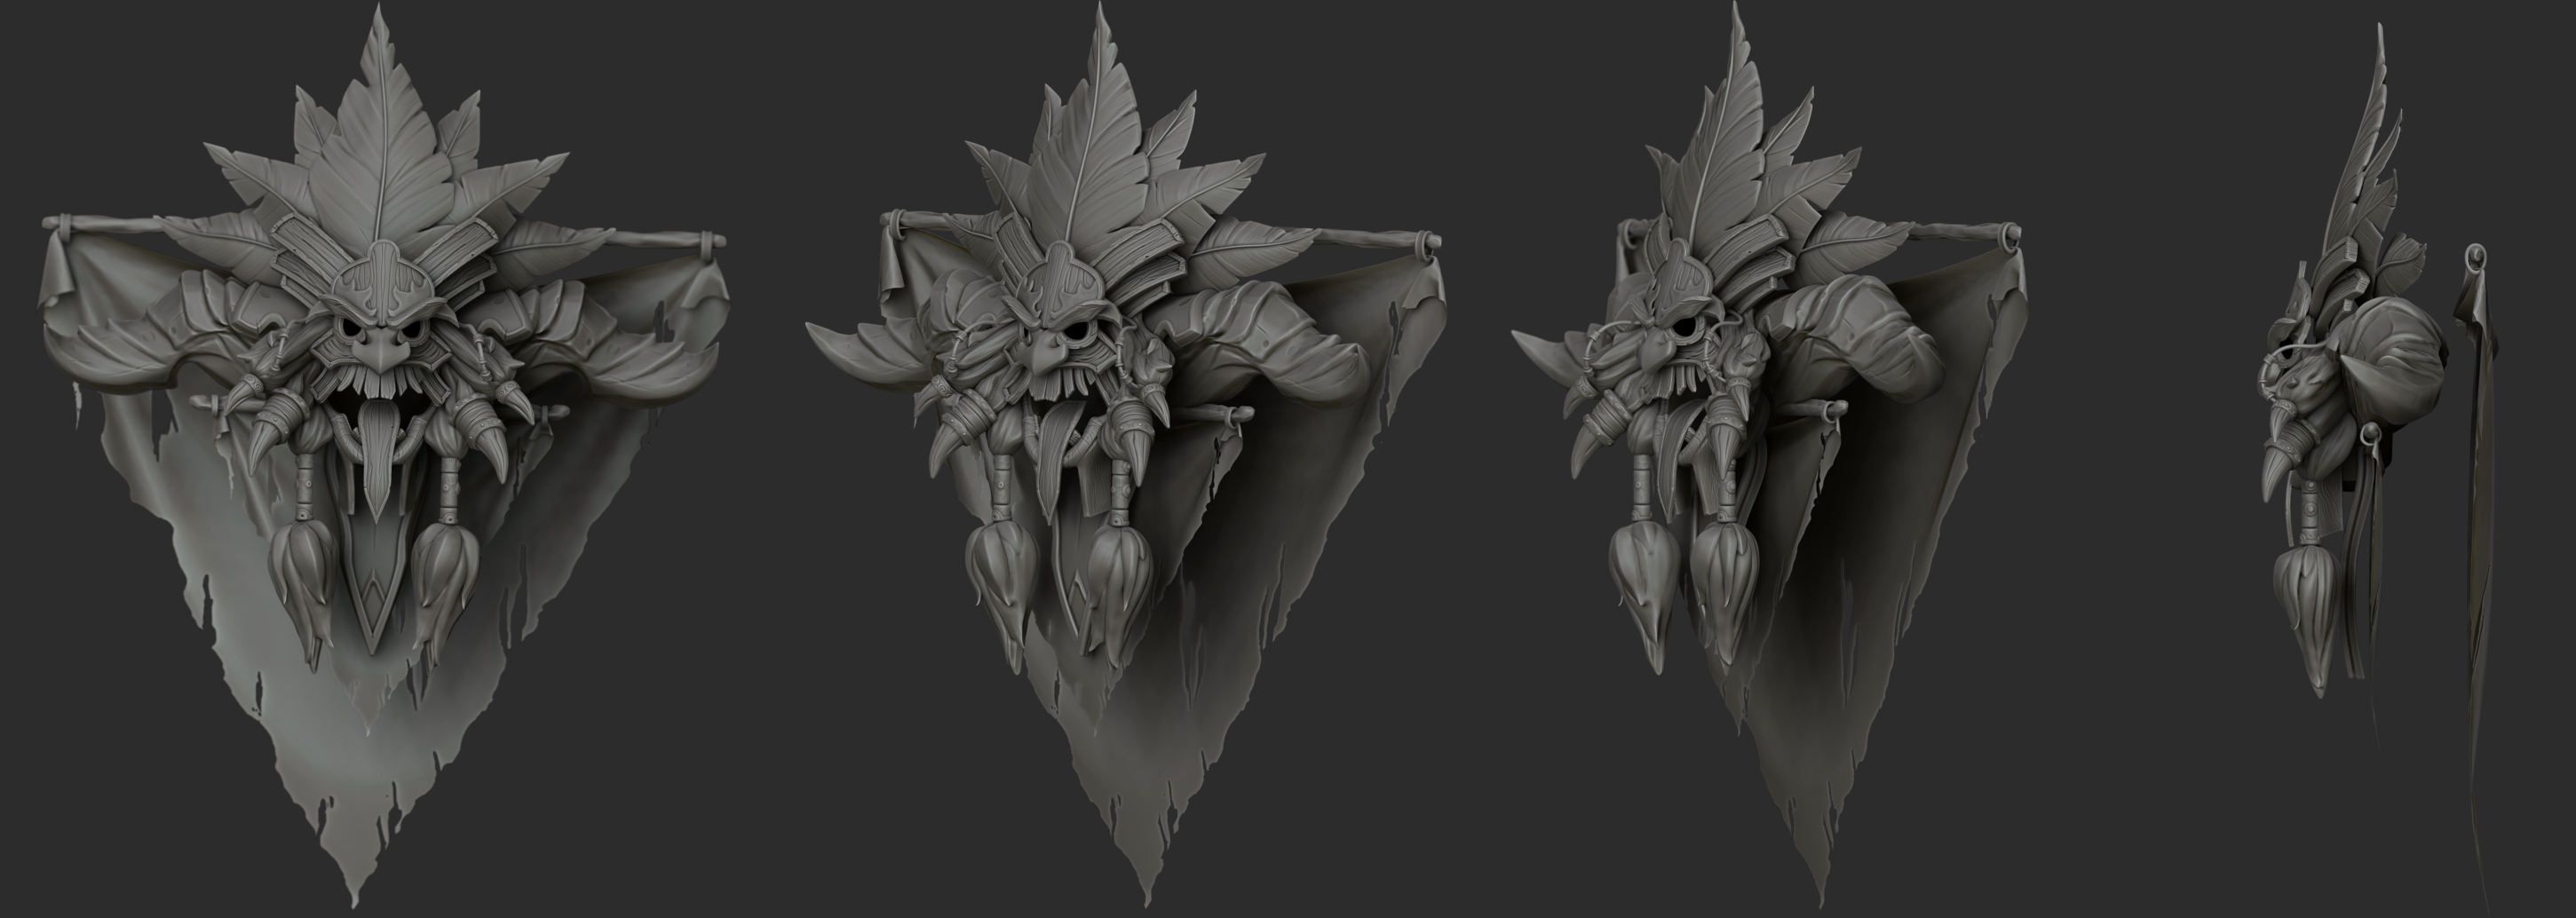 Diablo 3 witch doctor Crest render